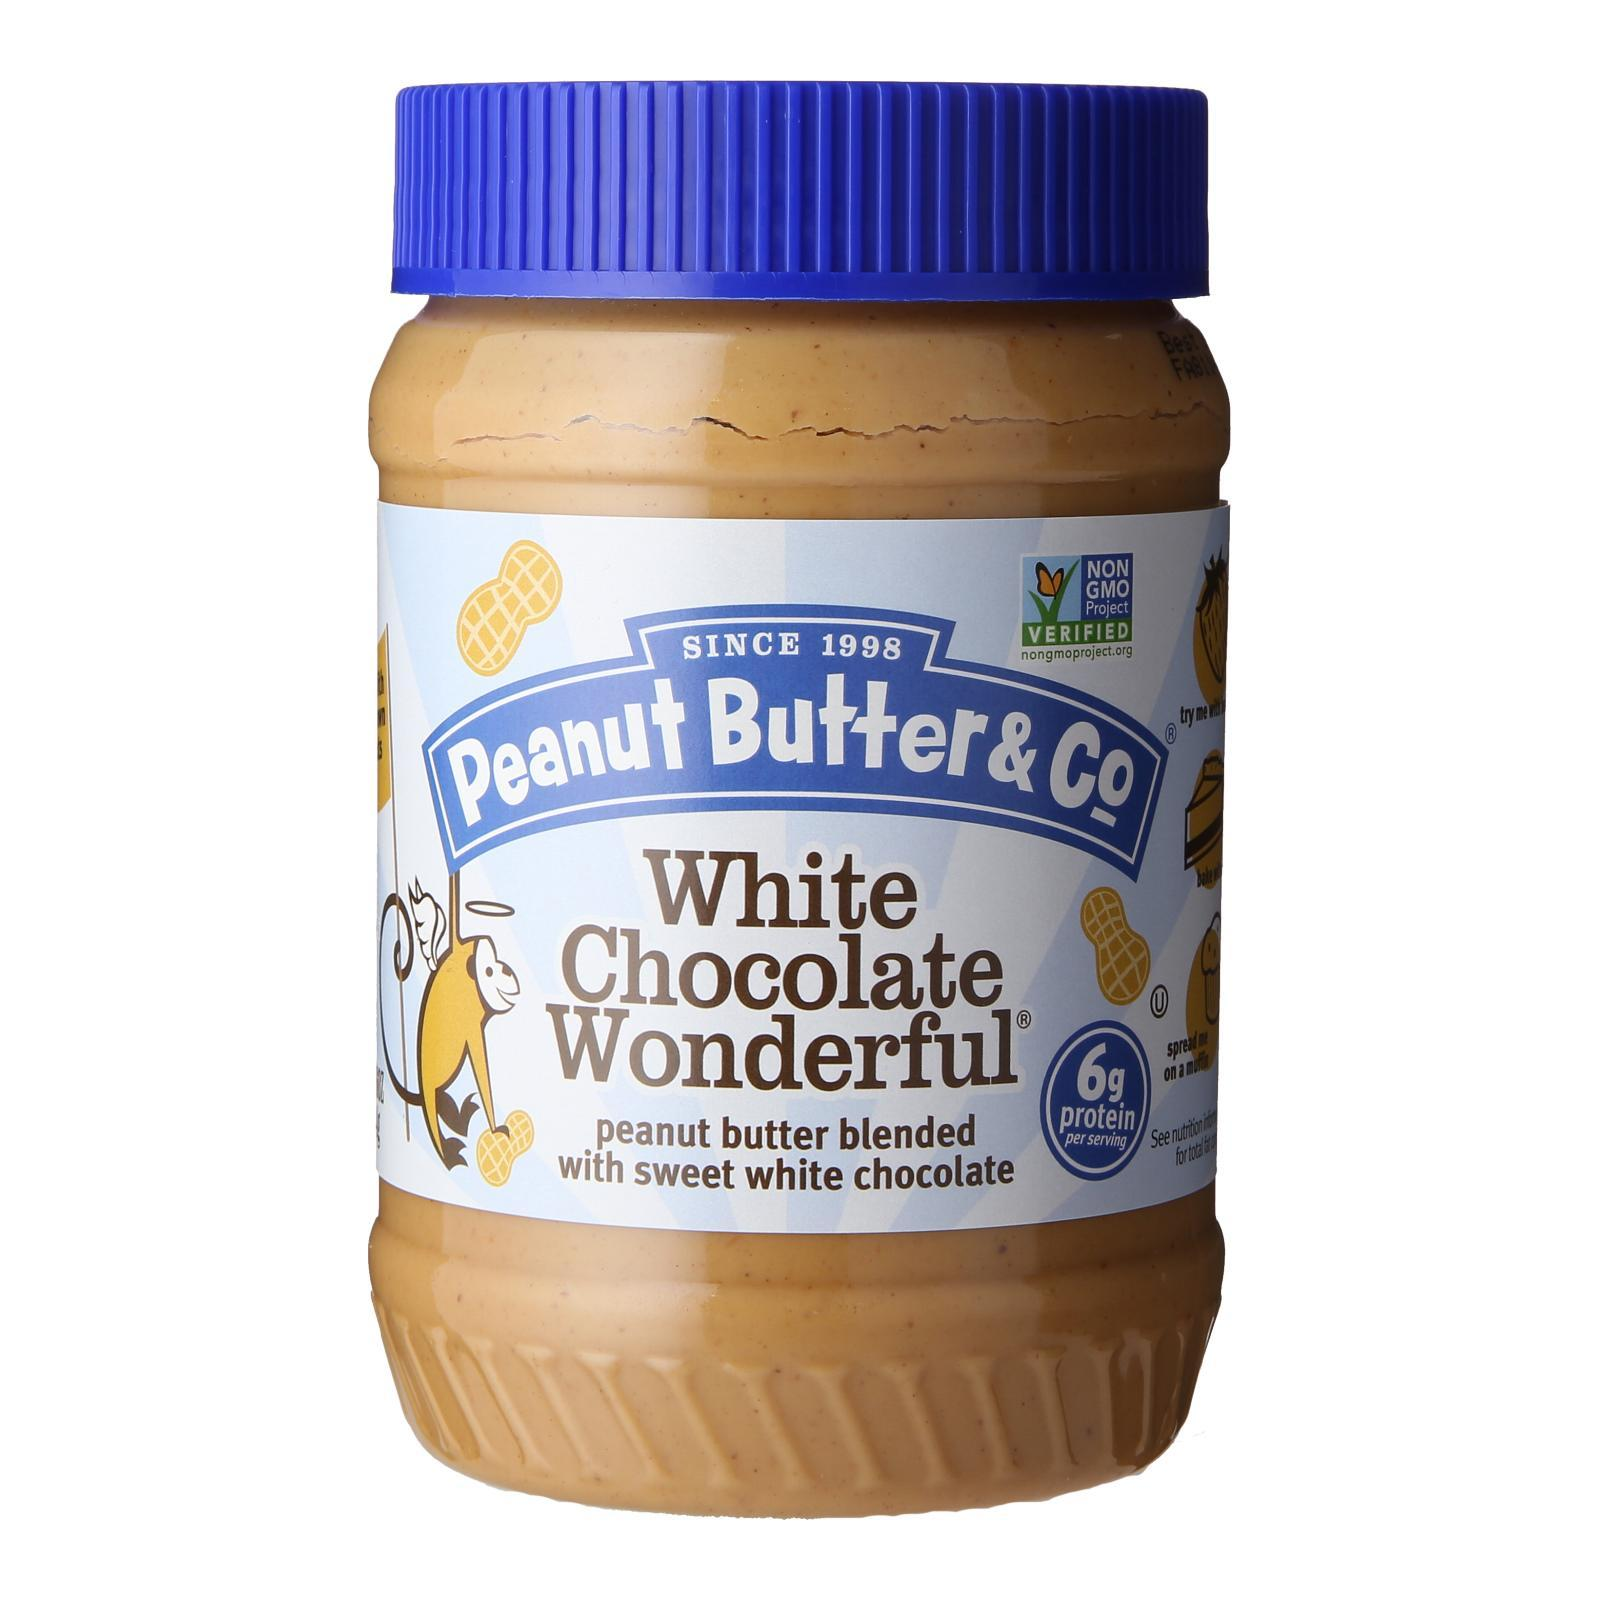 Peanut Butter & Co White Chocolate Wonderful Peanut Butter - By Wholesome Harvest